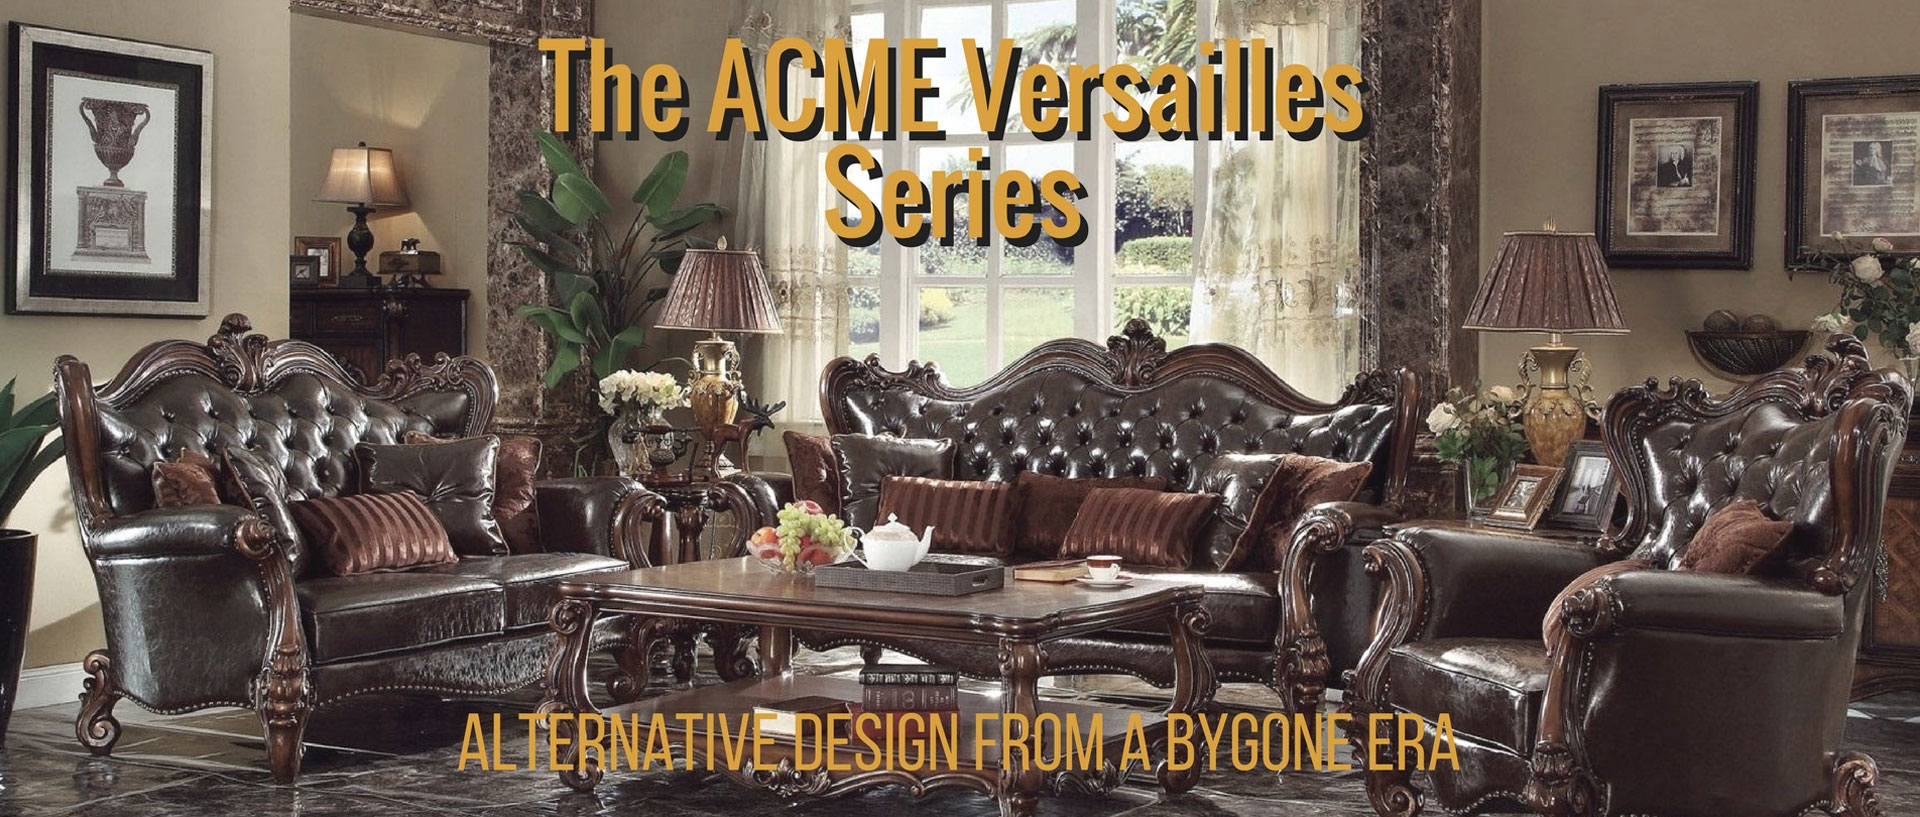 The ACME Versailles Series: Alternative Design from a Bygone Era